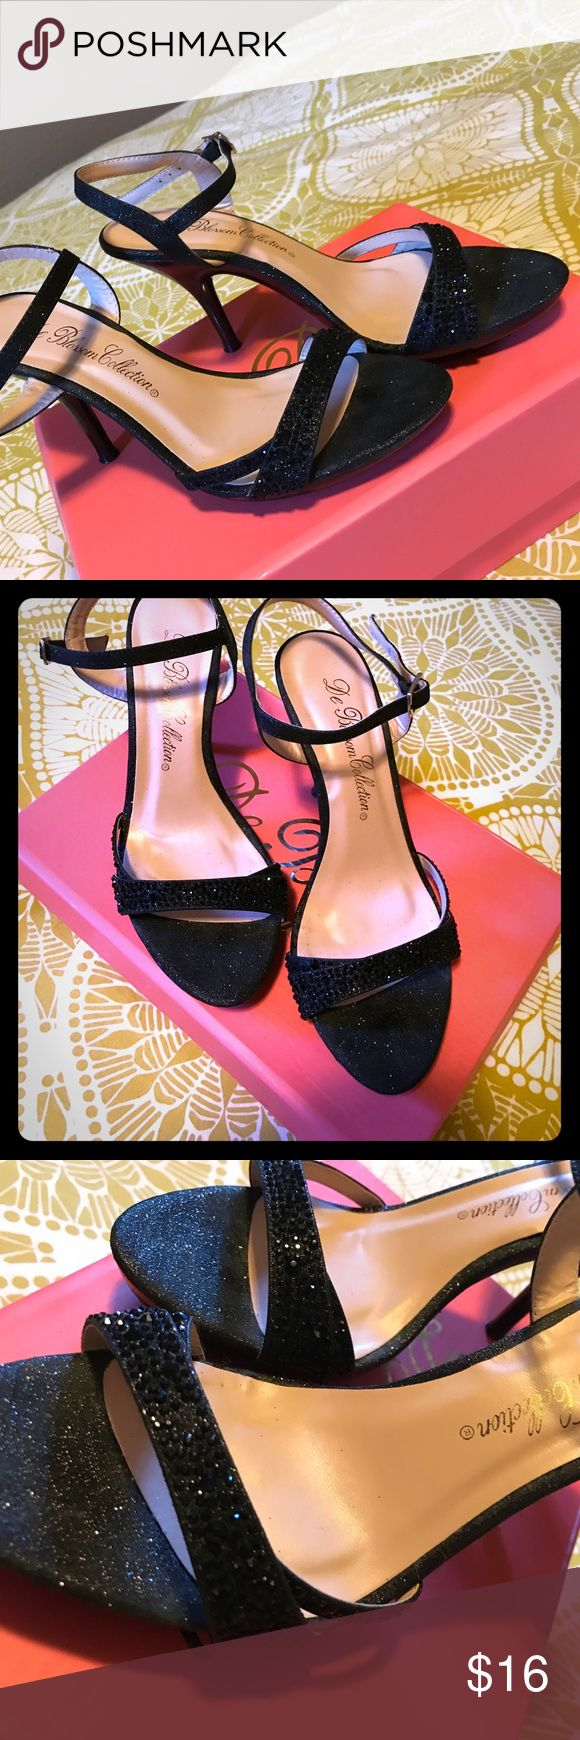 Black rhinestone & glitter stilettos Worn twice. Good condition. Rhinestone and glitter with gold accent. De Blossom Shoes Heels